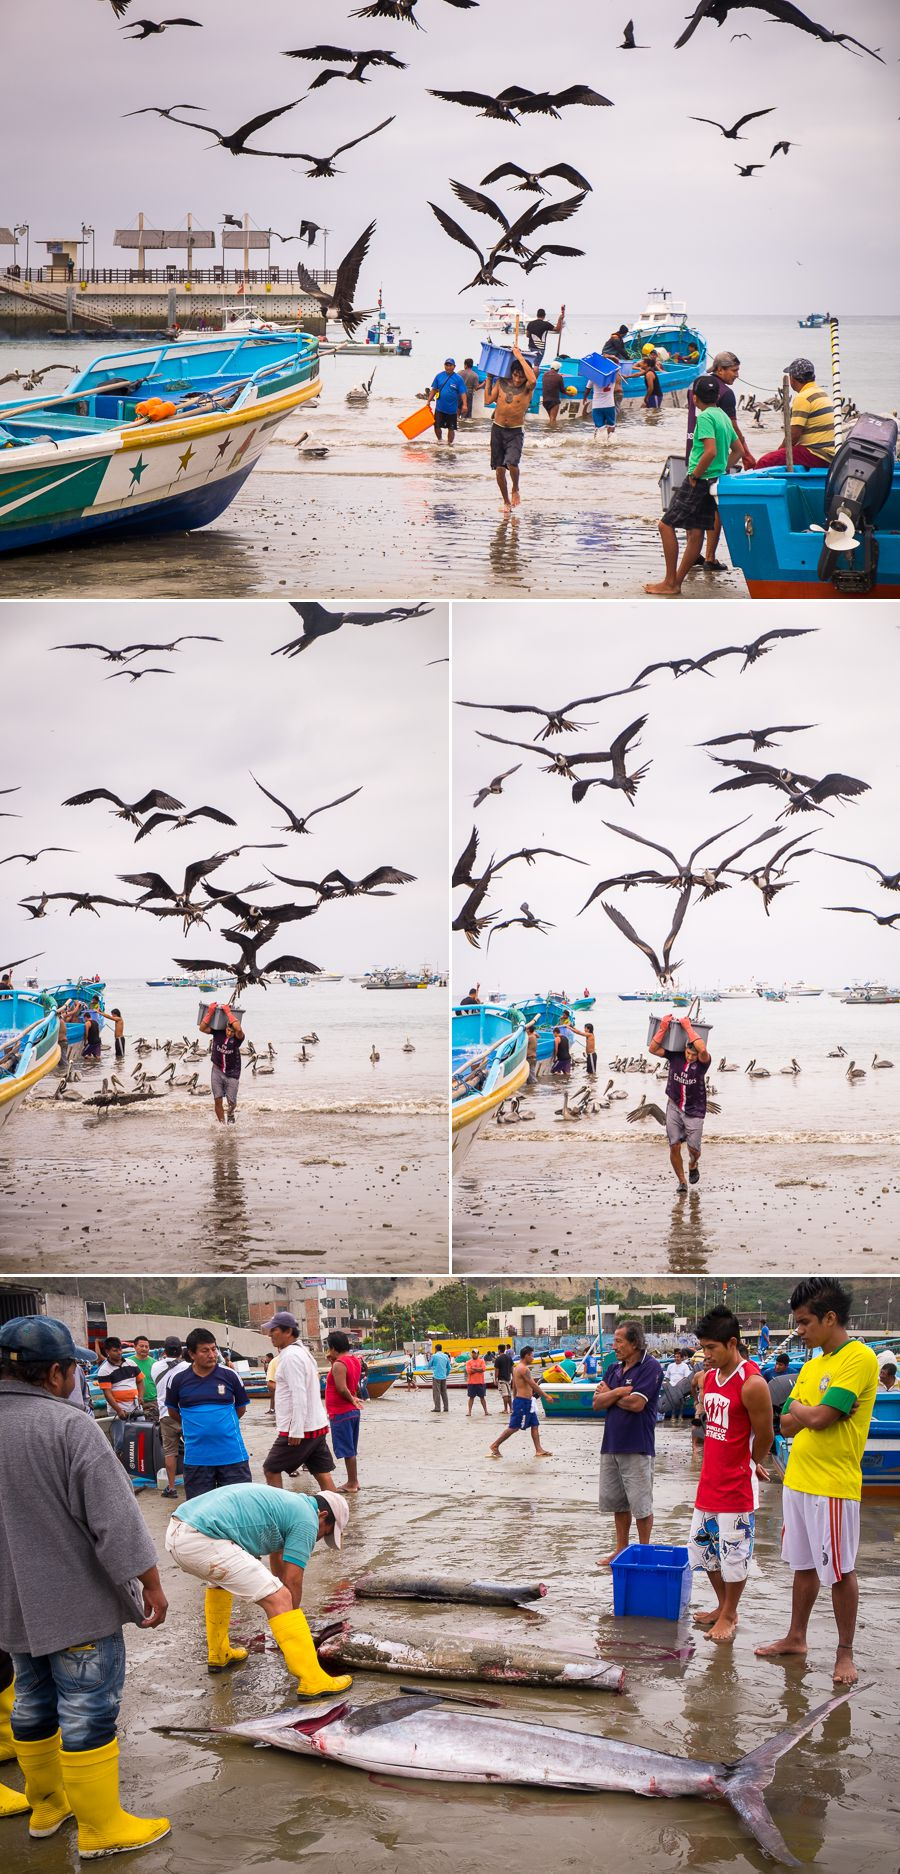 Scenes at the fish market as hundreds of birds swoop the men carrying buckets of fish from the boats - Puerto Lopez, Ecuador